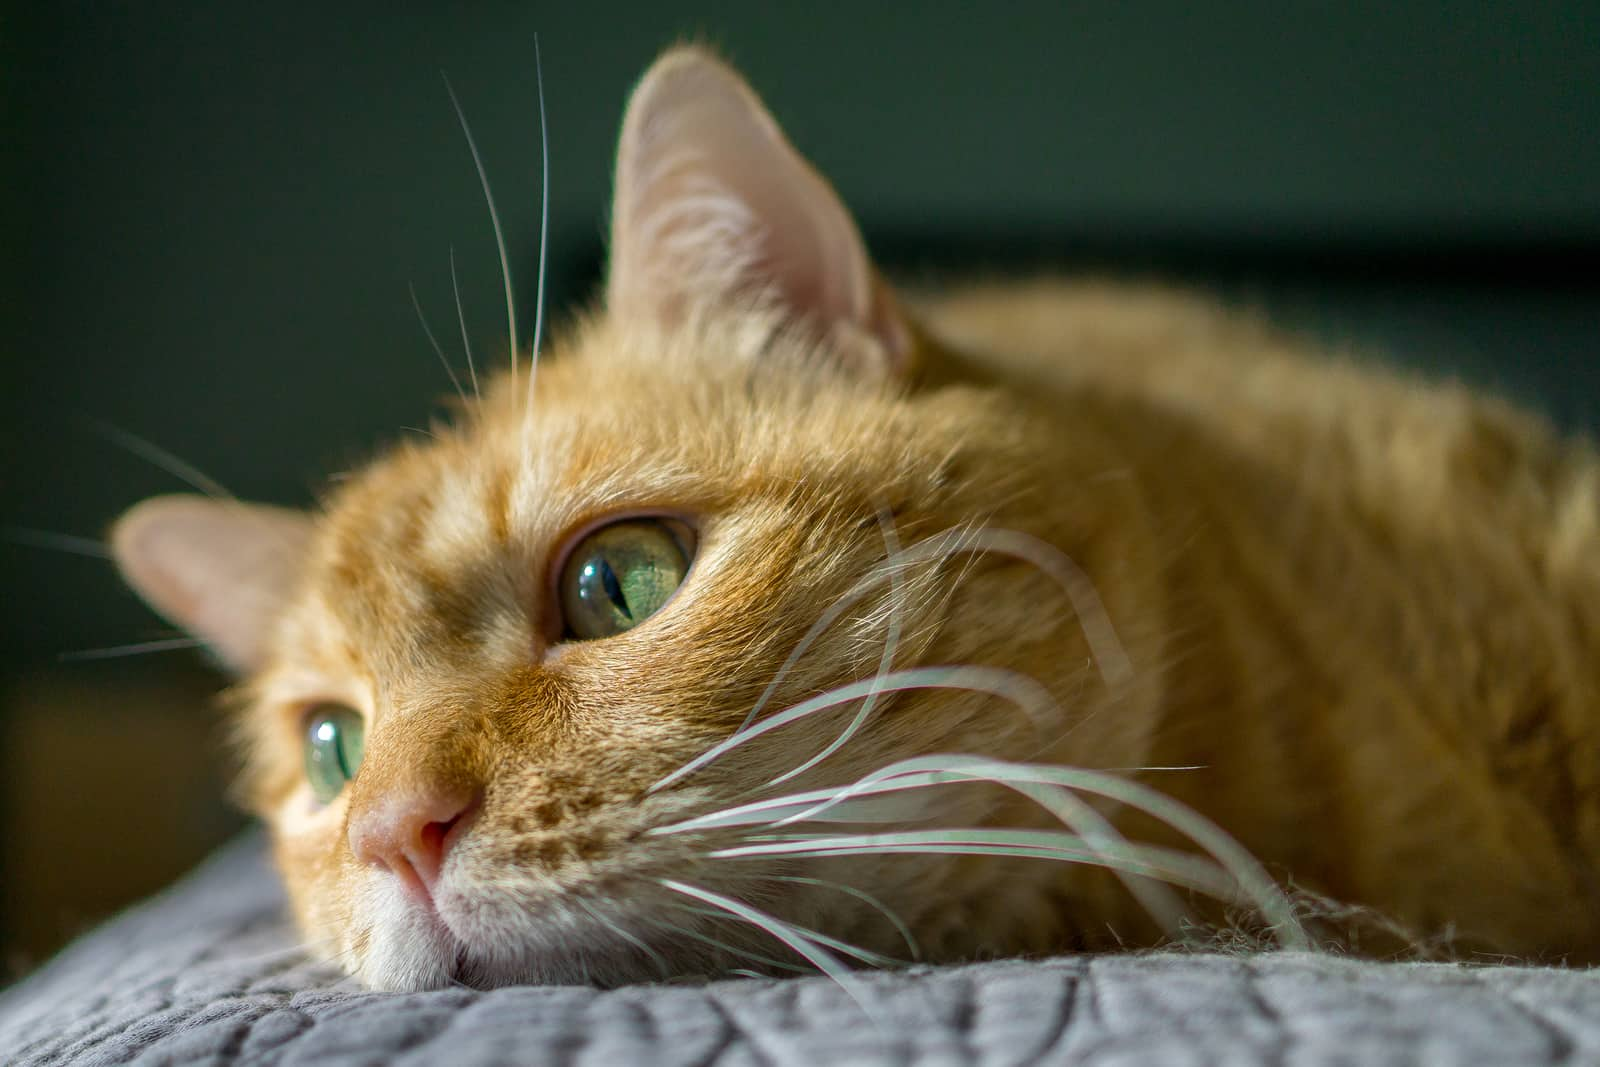 Orange tabby cat with green eyes flopped on a bedspread